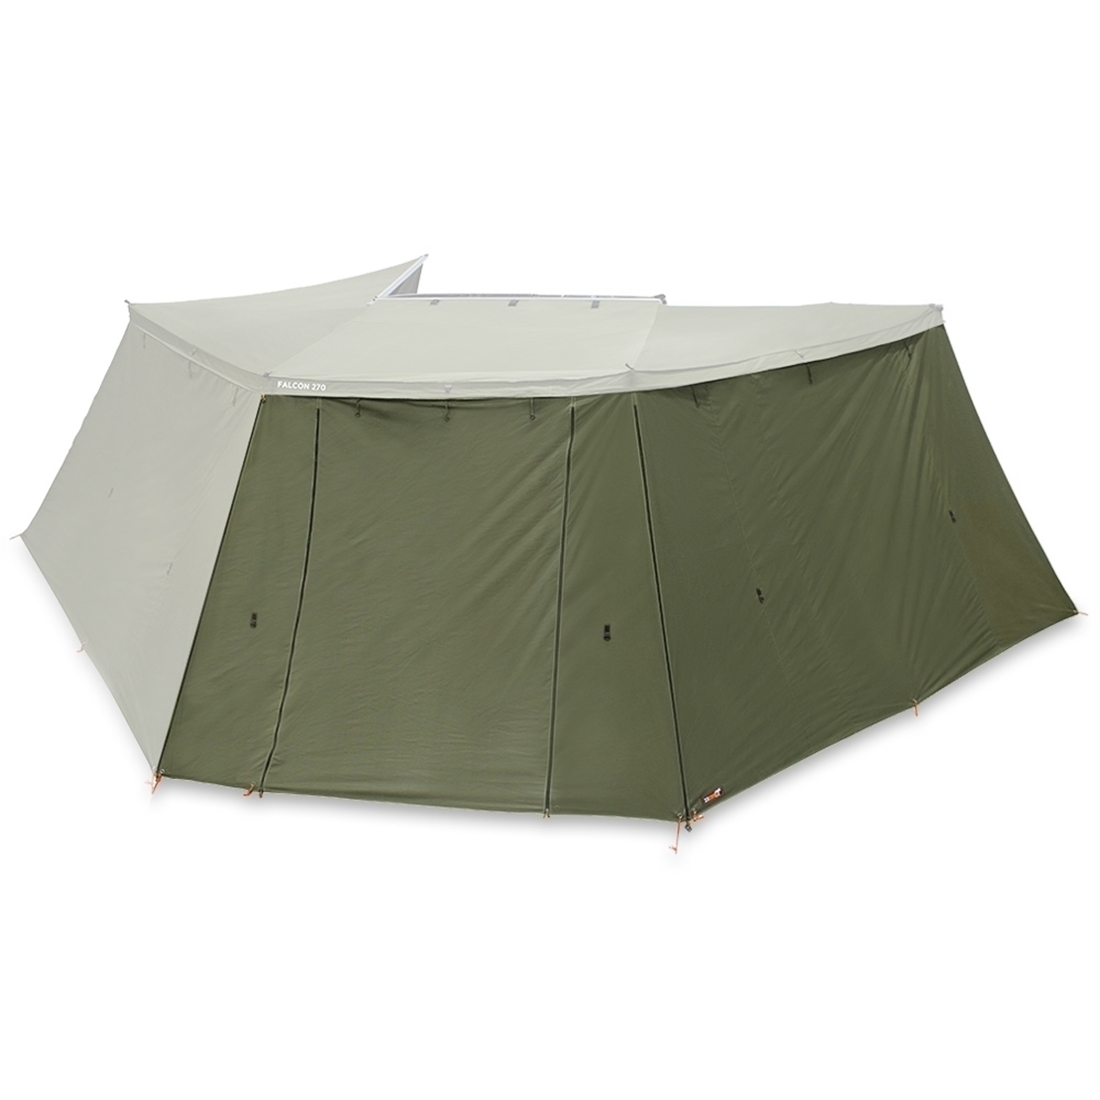 23 ZERO Peregrine 270 Awning Wall A Driver Side